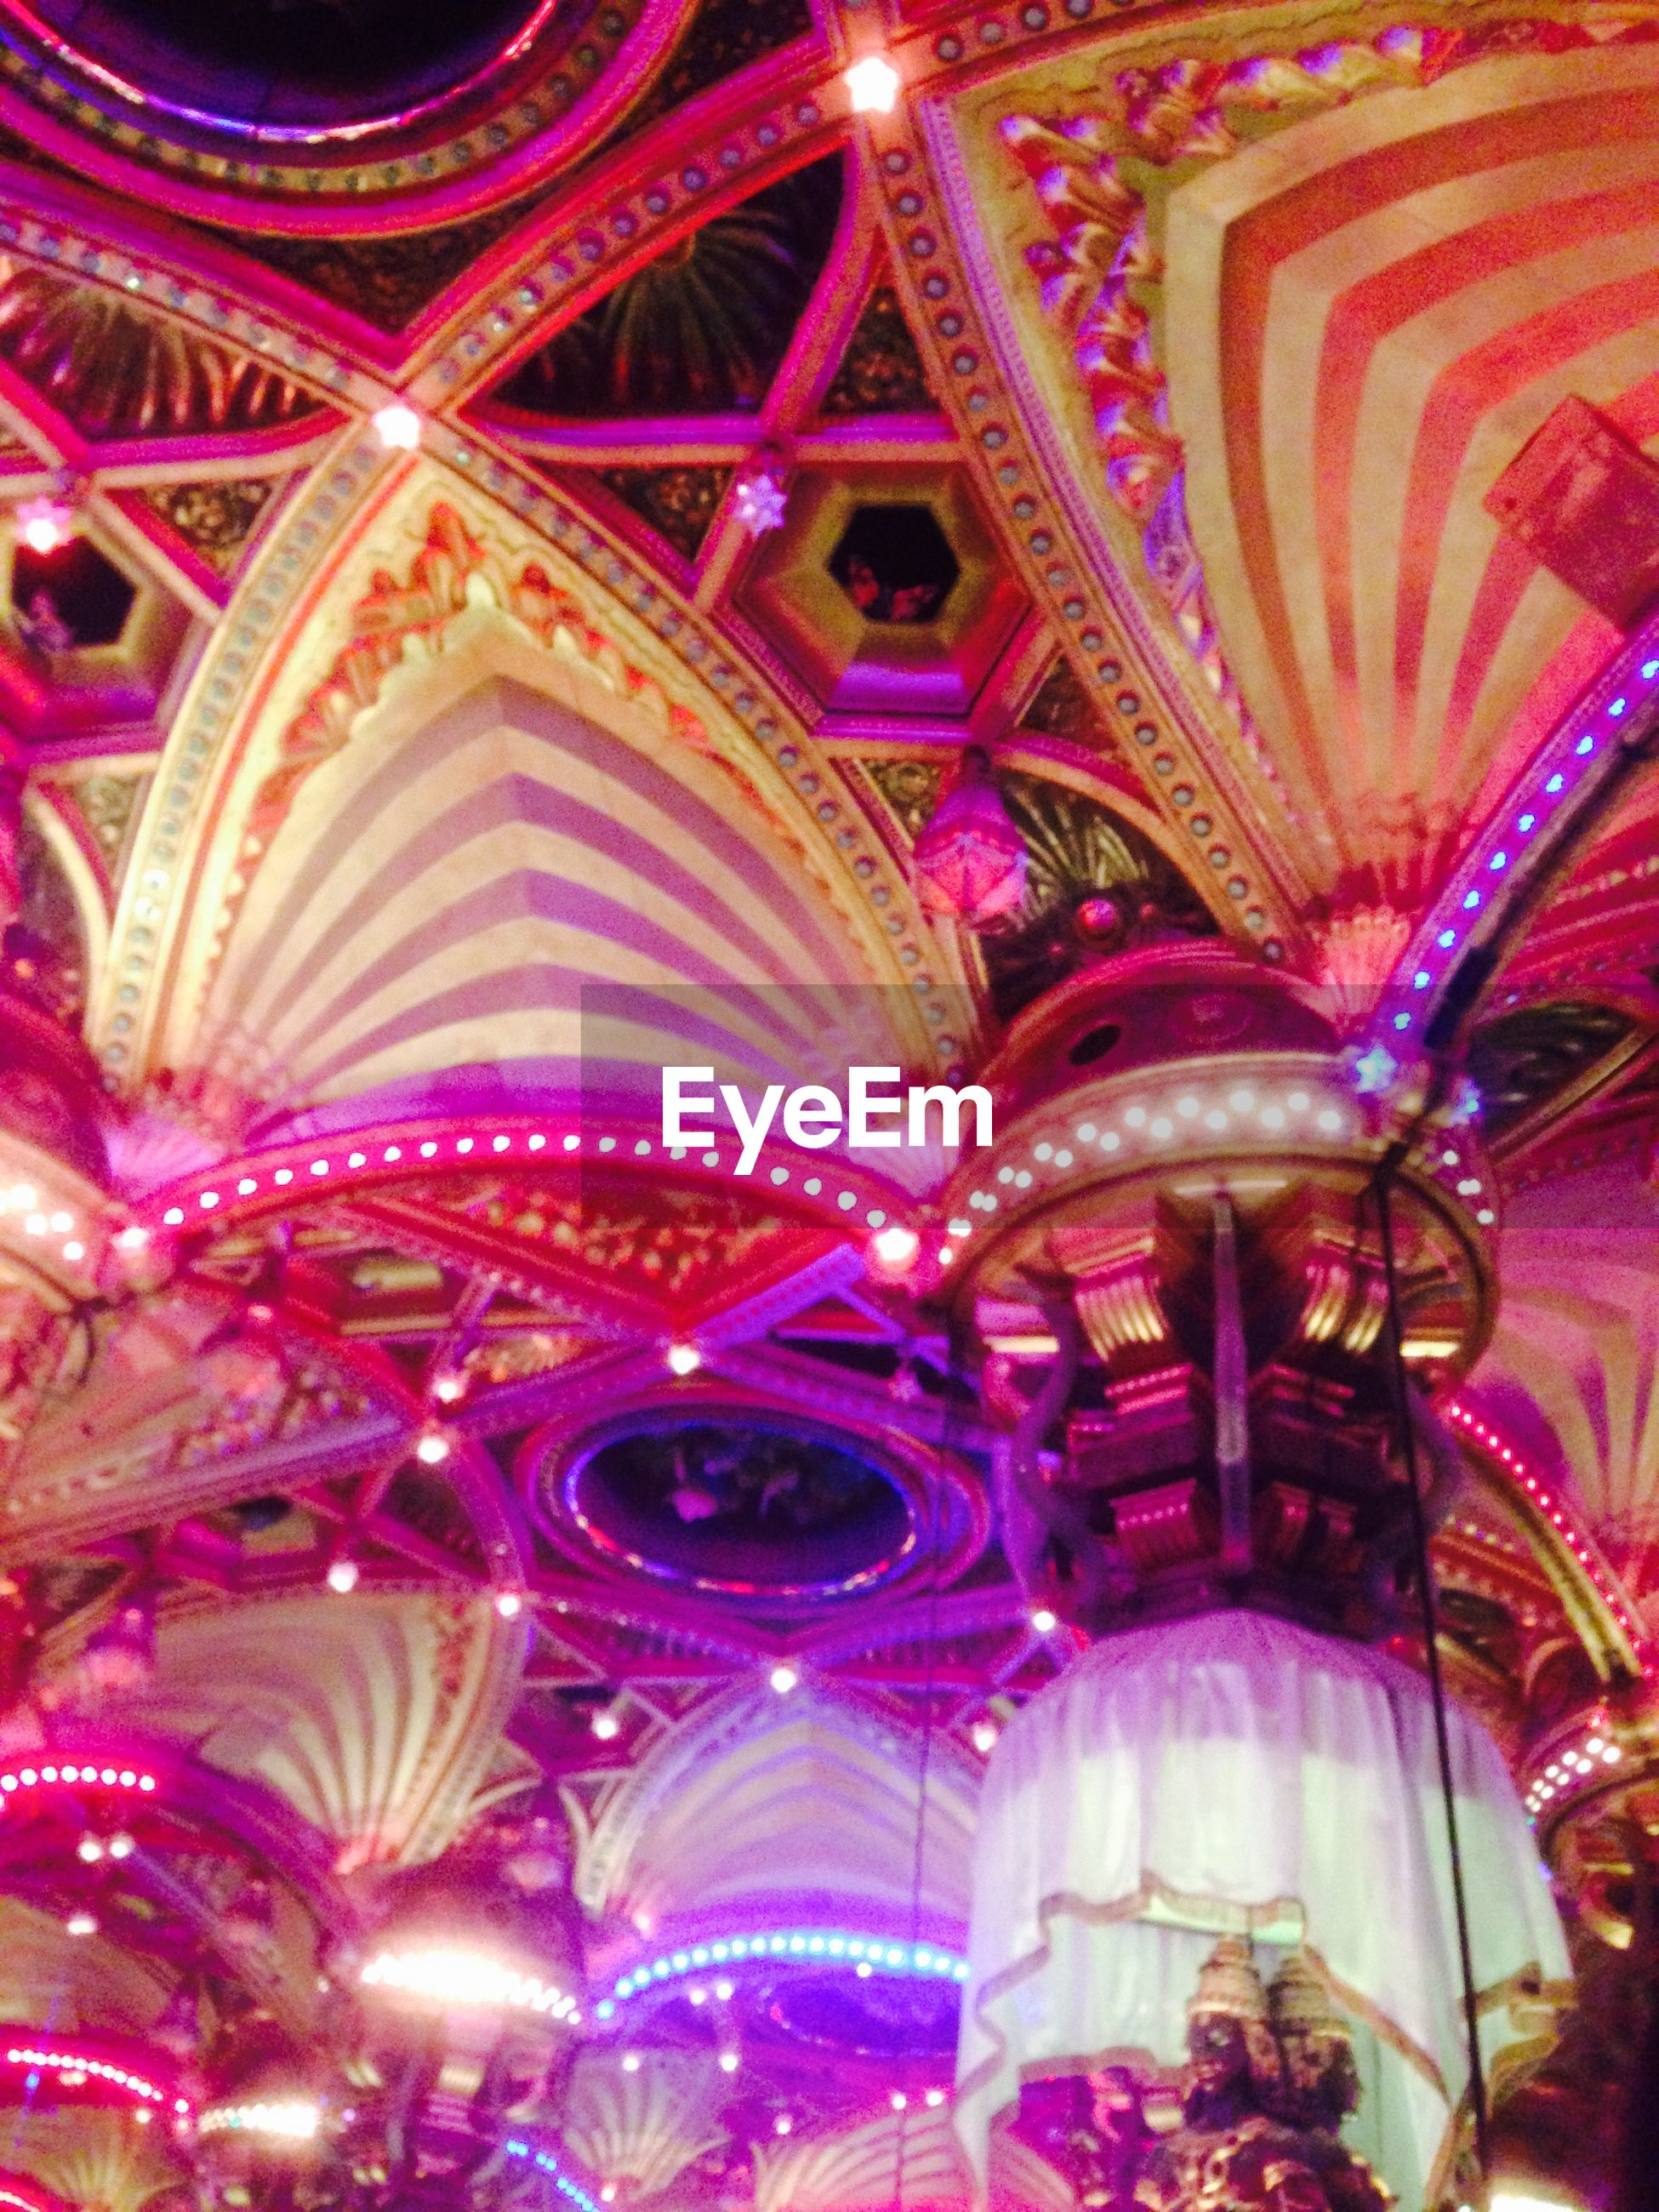 indoors, illuminated, multi colored, decoration, full frame, backgrounds, ornate, pattern, design, tradition, art and craft, night, cultures, celebration, abundance, ceiling, christmas, art, christmas decoration, creativity